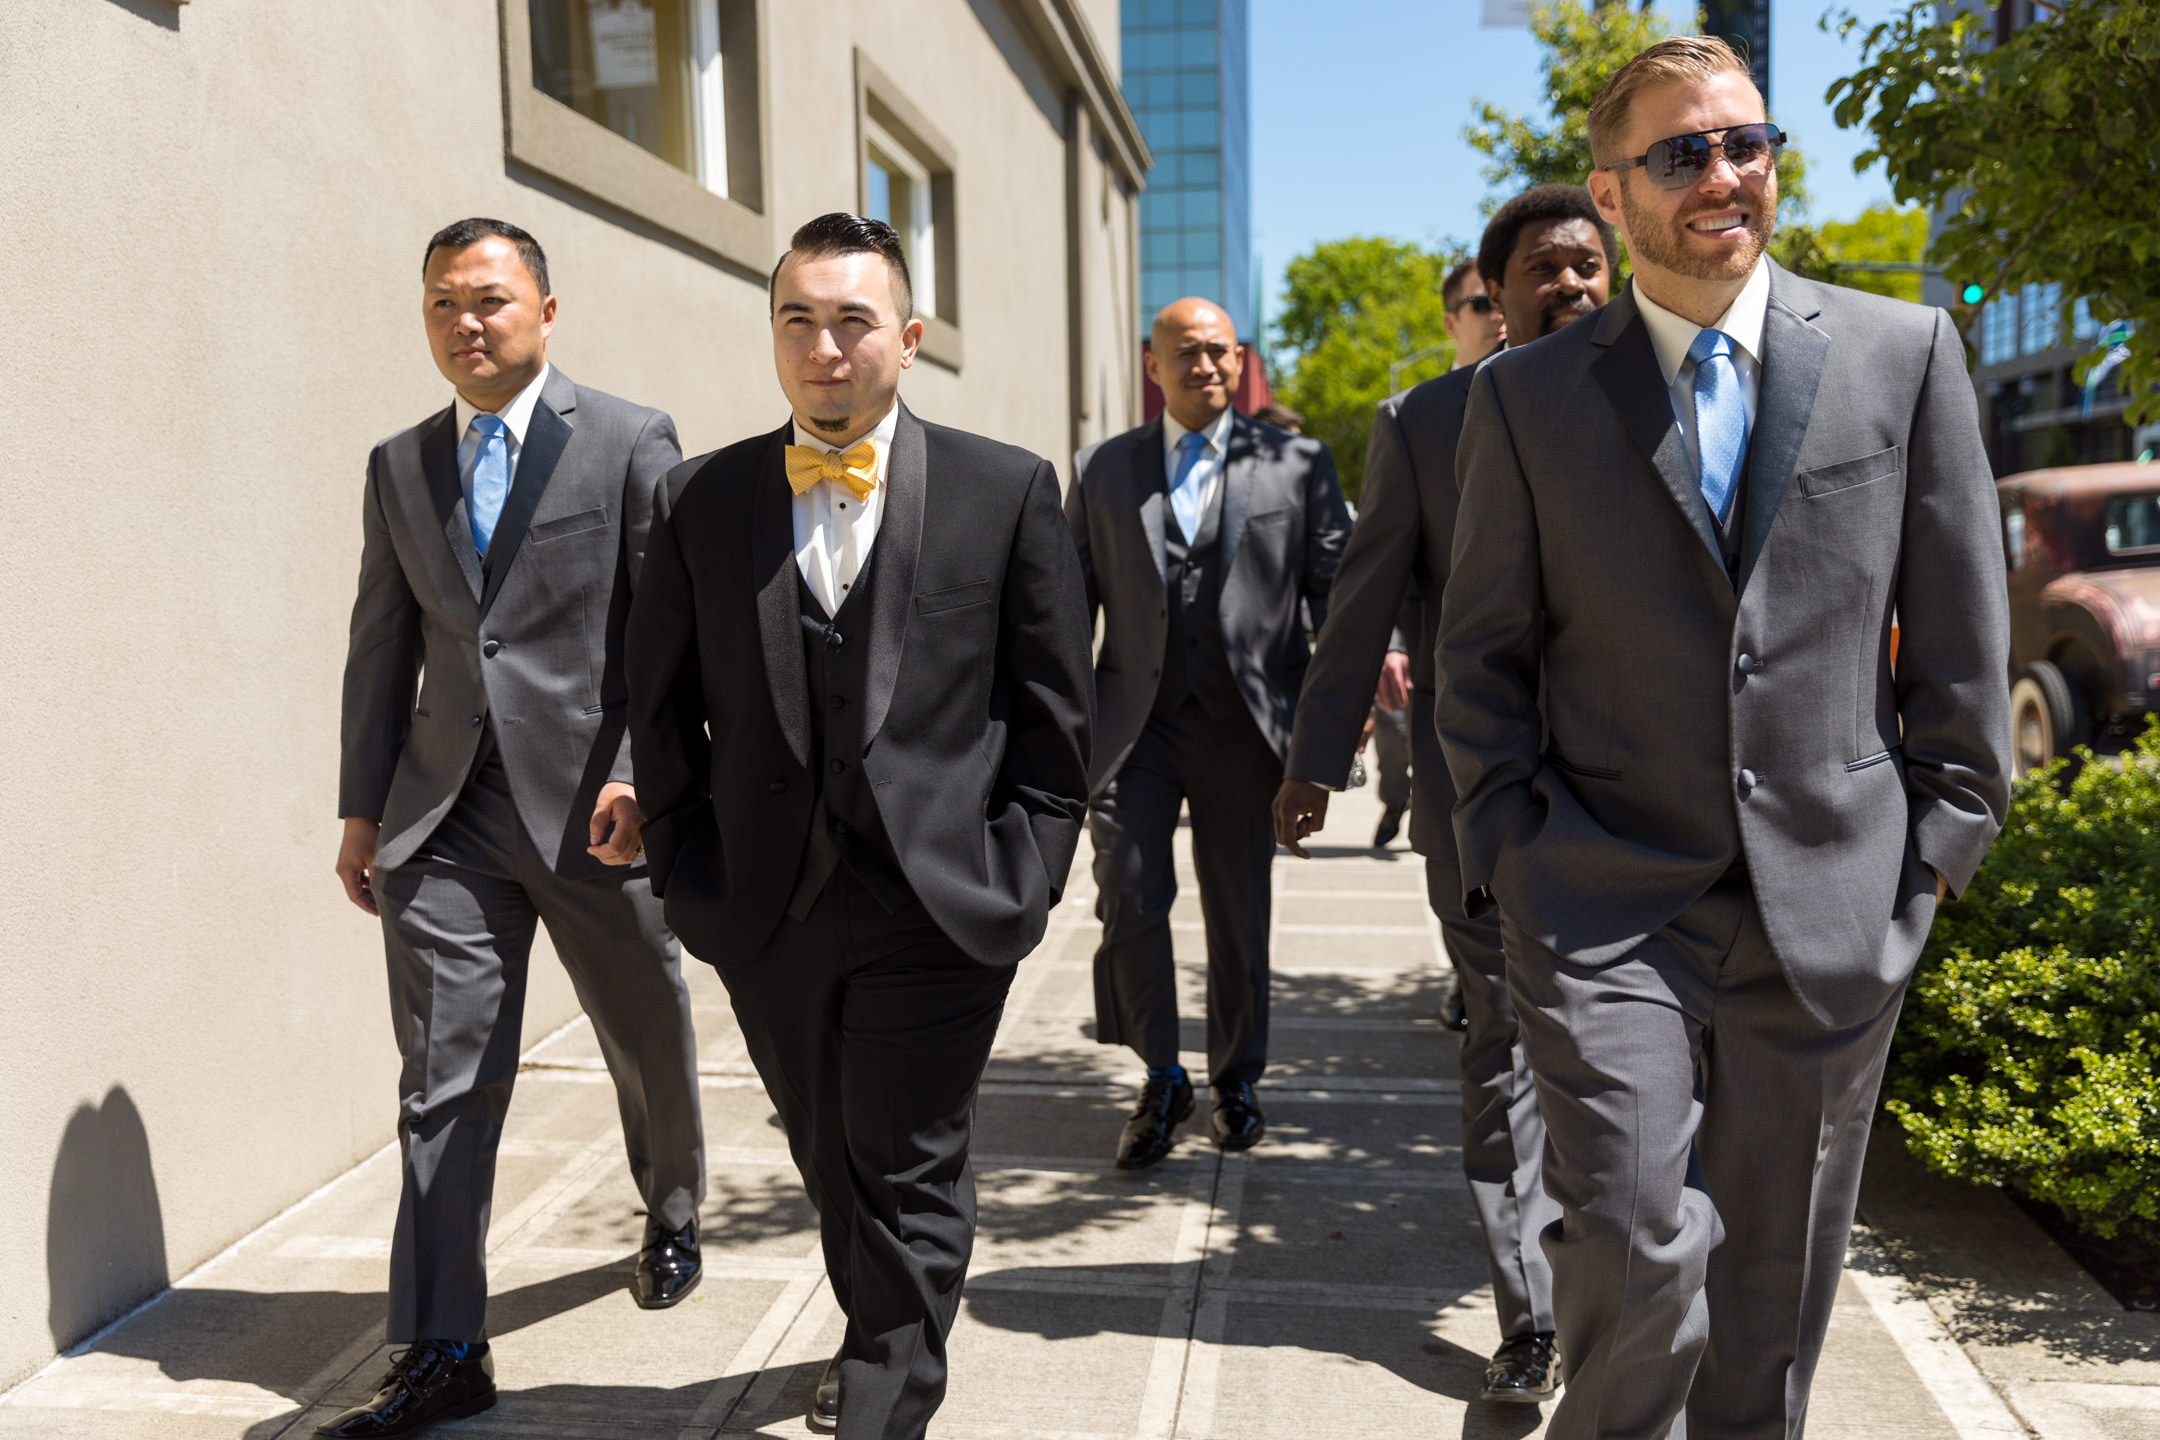 Groom and Groomsmen Squad Walk